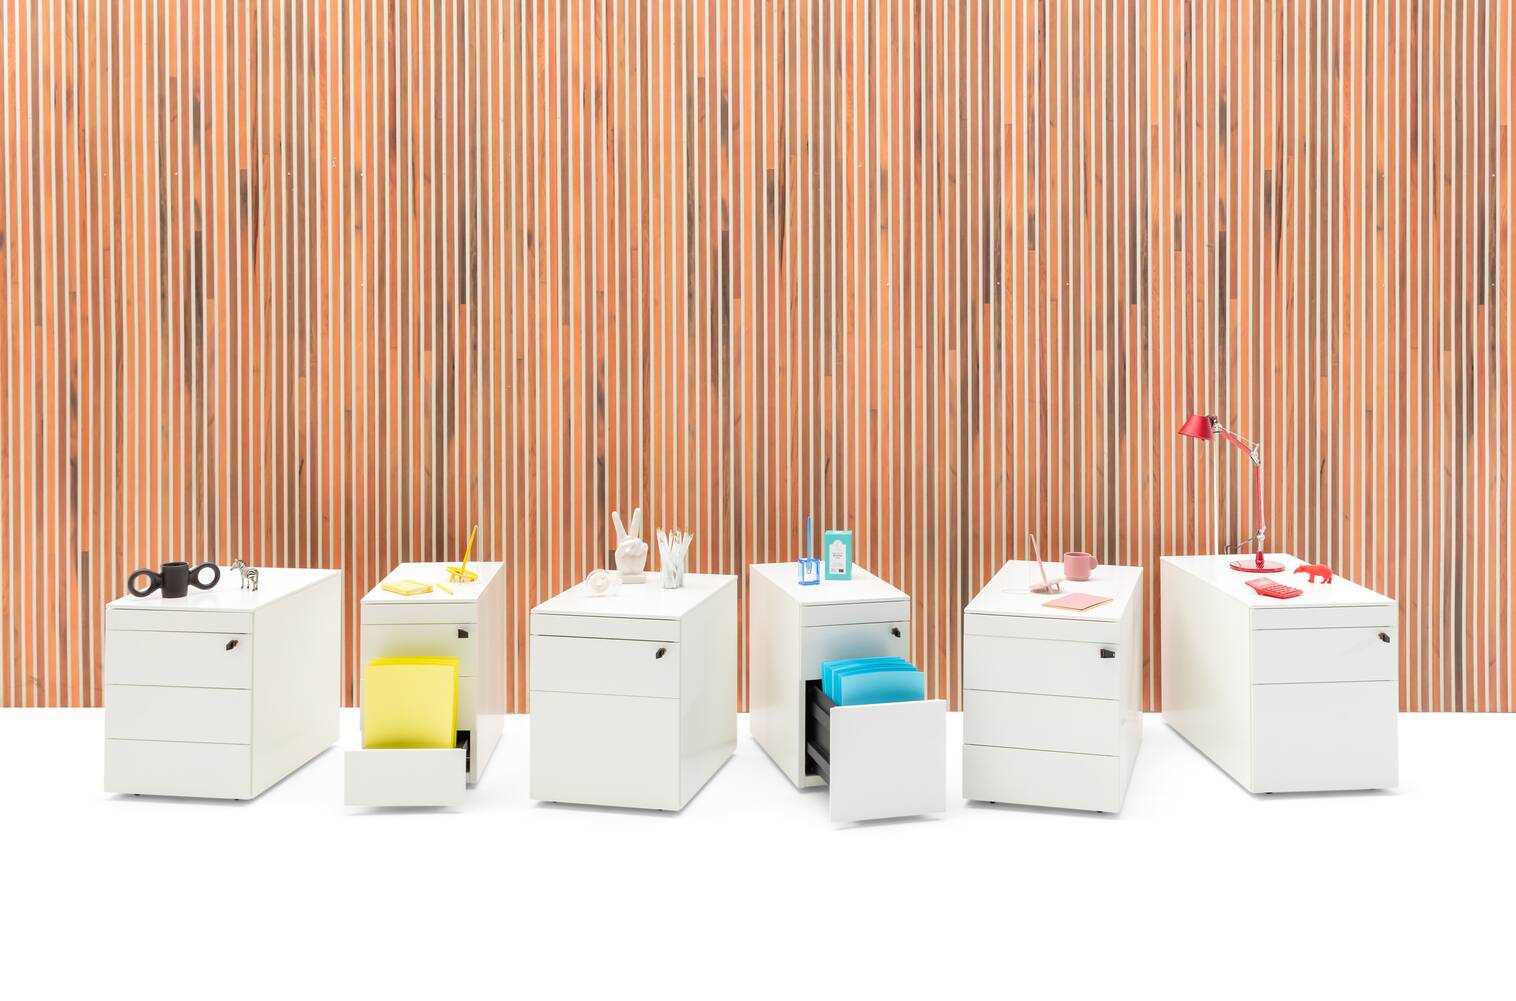 Royal Ahrend Pedestals in white with coloured office supplies in front of brown wood patern backpanel front view